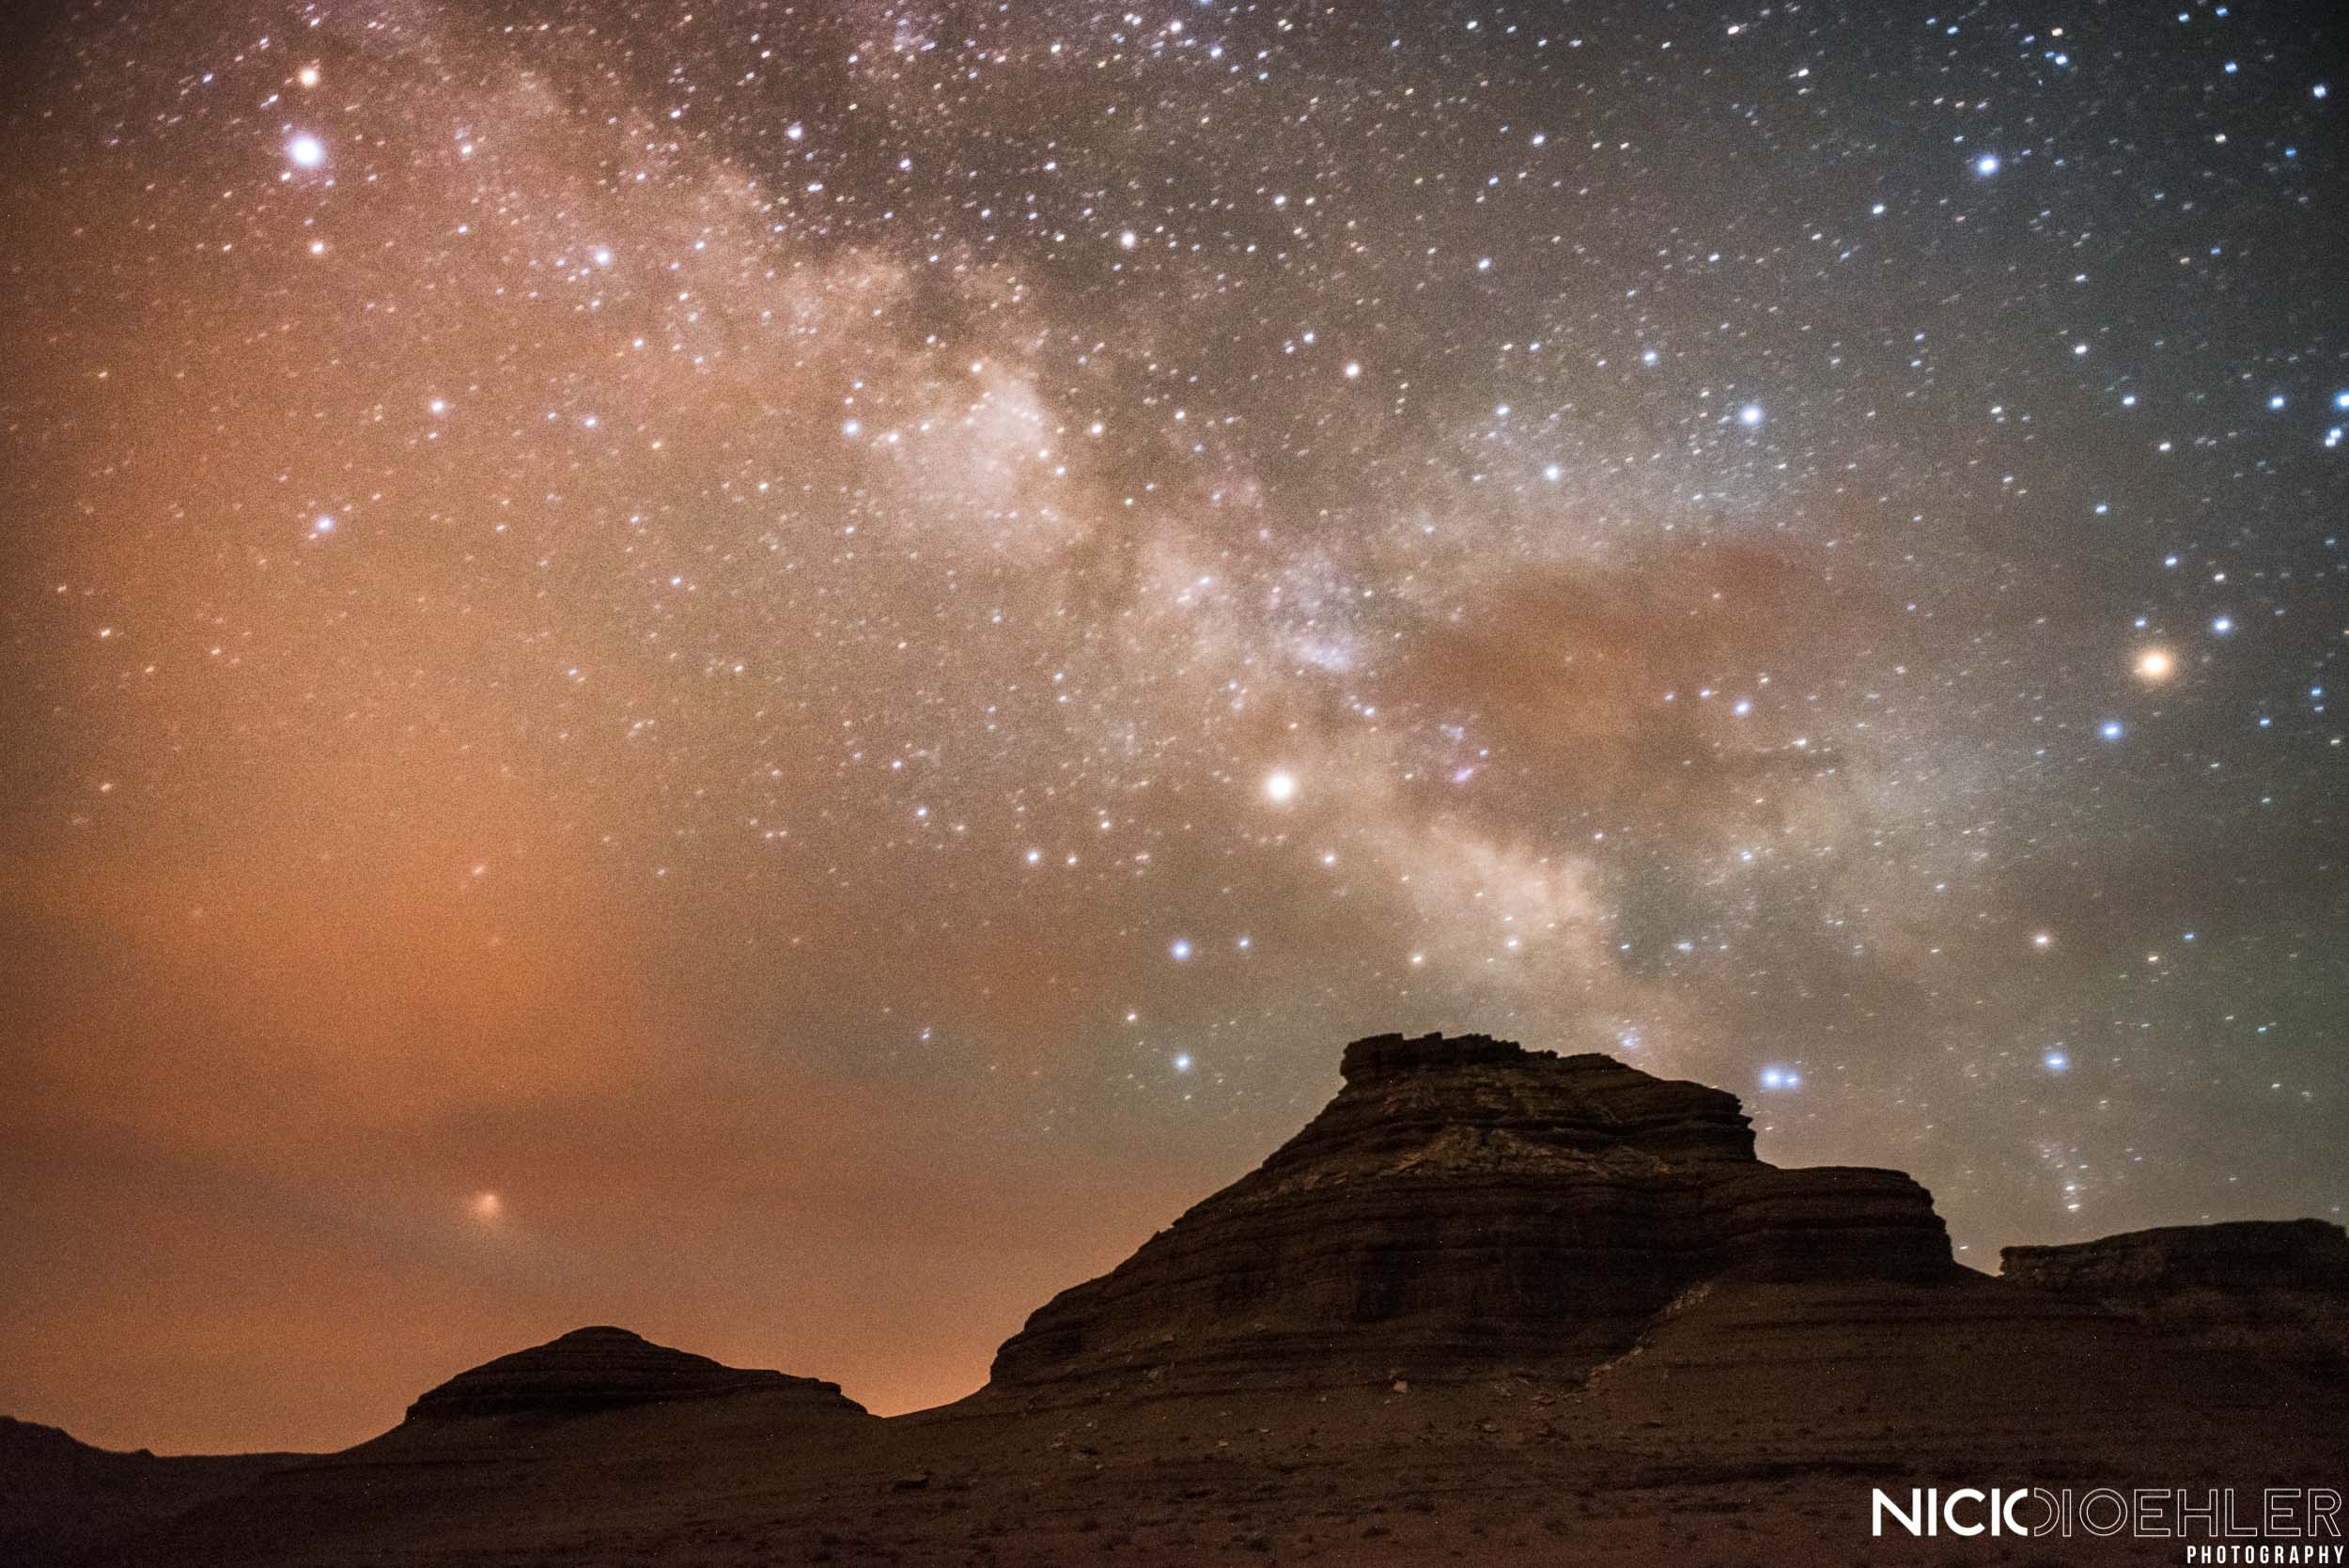 Grand Canyon National Park: The Milky Way across the cloudy sky.